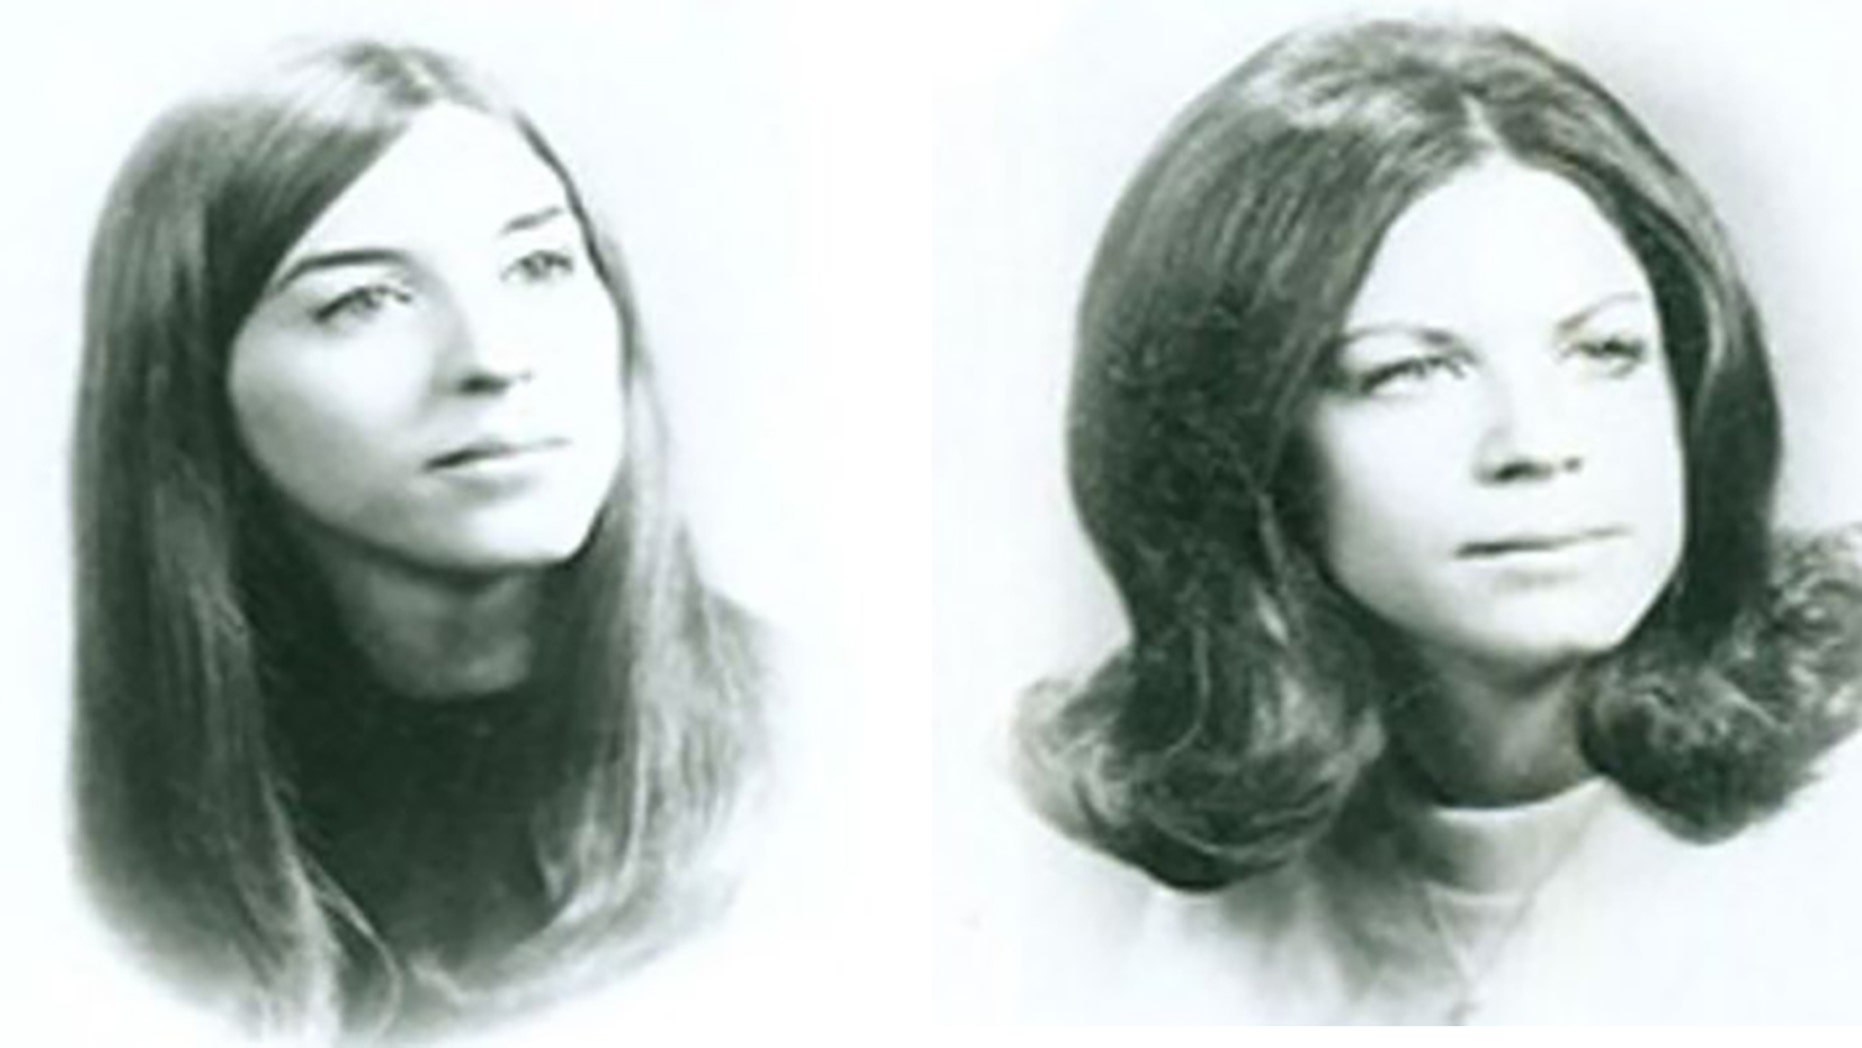 Janice Frances Pietropoli (left) and Lynn Marie Seethaler (right) were both murdered in 1973 at beach cottage in Virginia.